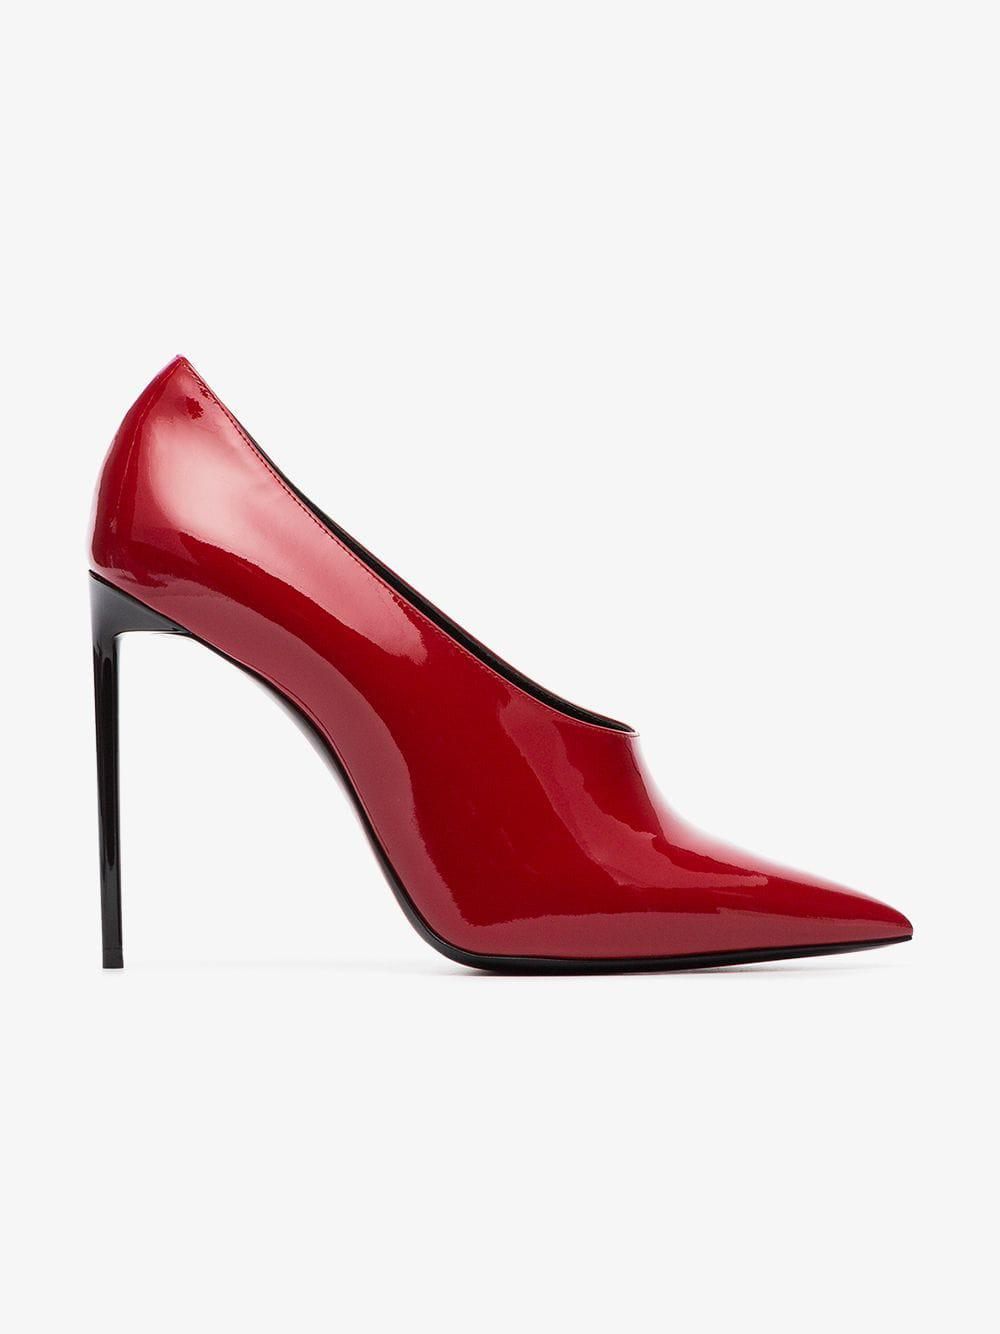 8db461e379ed Lyst - Saint Laurent Teddy 105 Patent Leather Pumps in Red